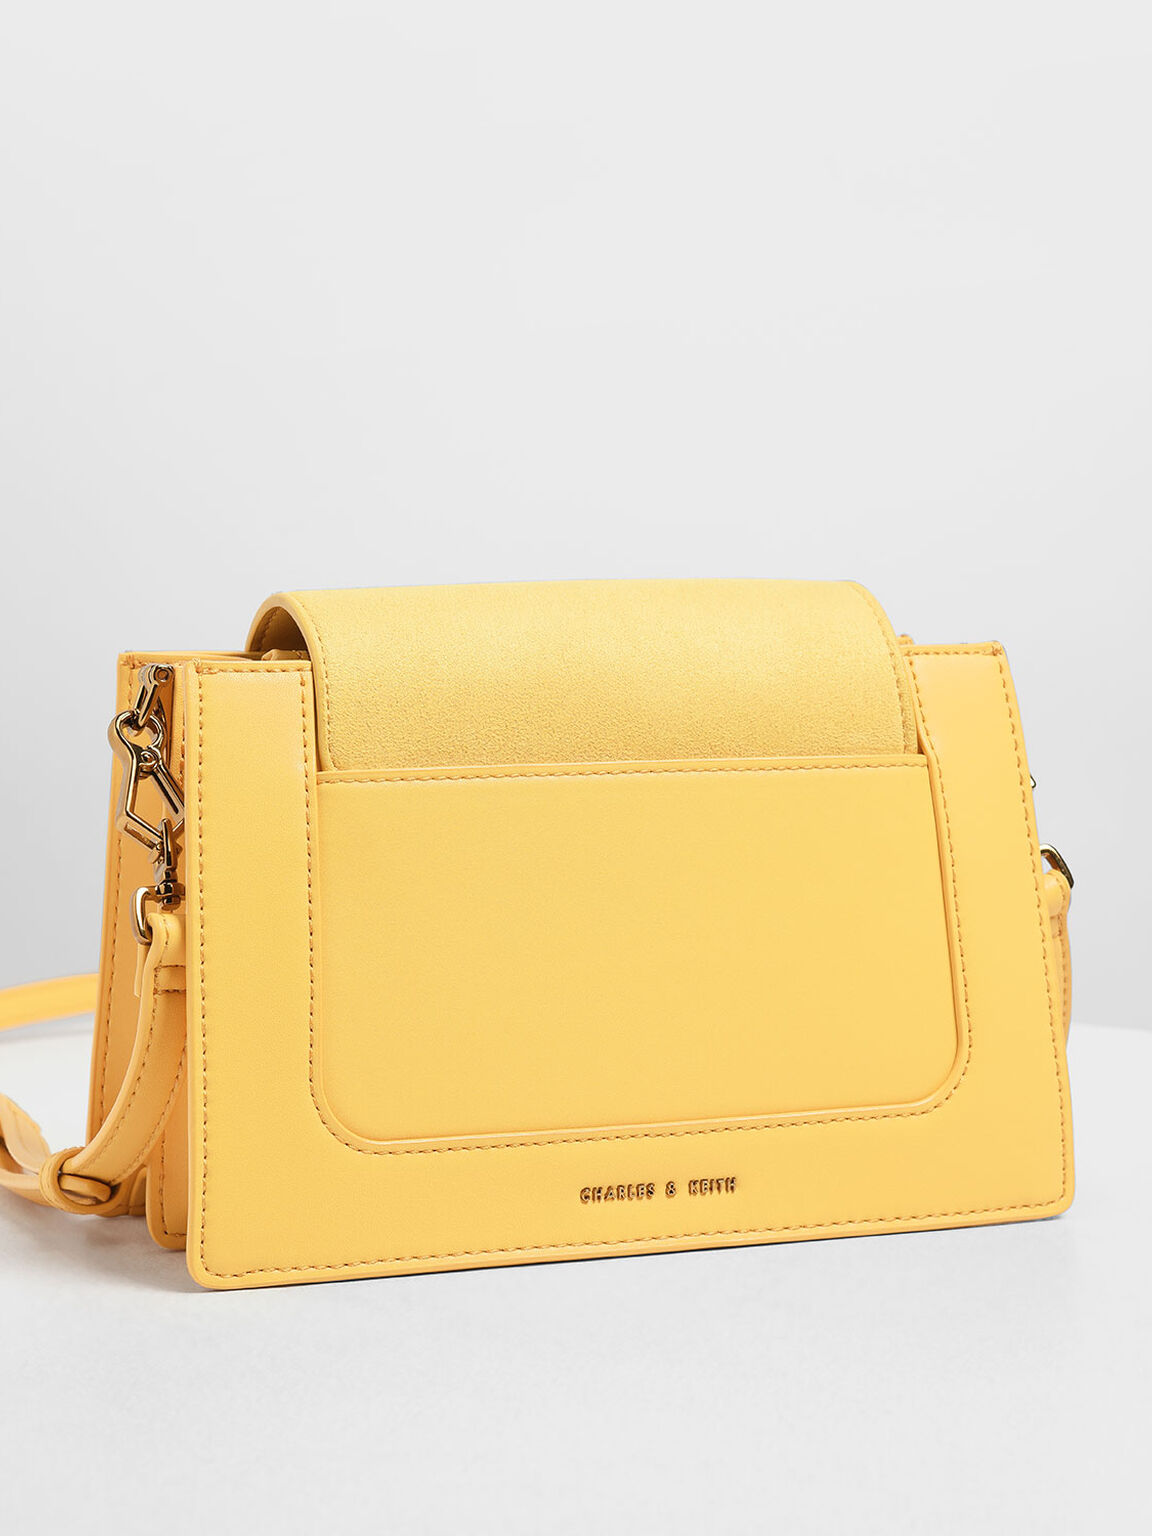 Bamboo-Effect Flip Lock Crossbody Bag, Yellow, hi-res